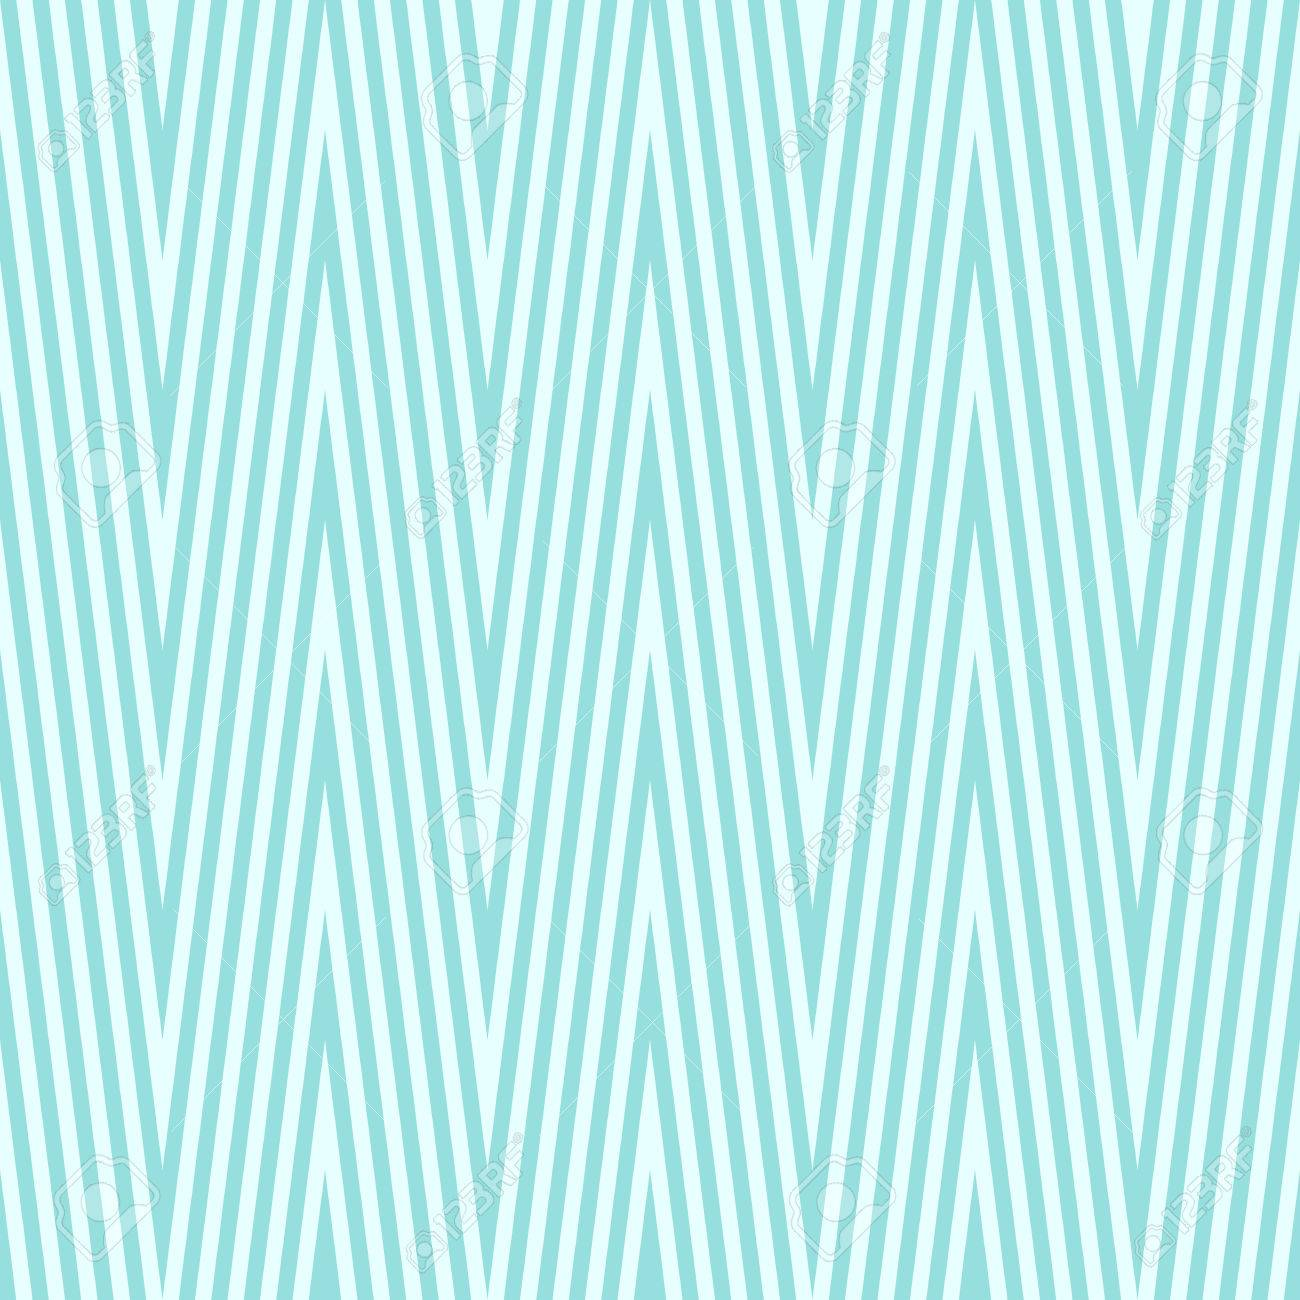 558ad053 Background pattern stripe seamless vector texture green aqua pastel two  tone colors. Wallpaper backdrop wave